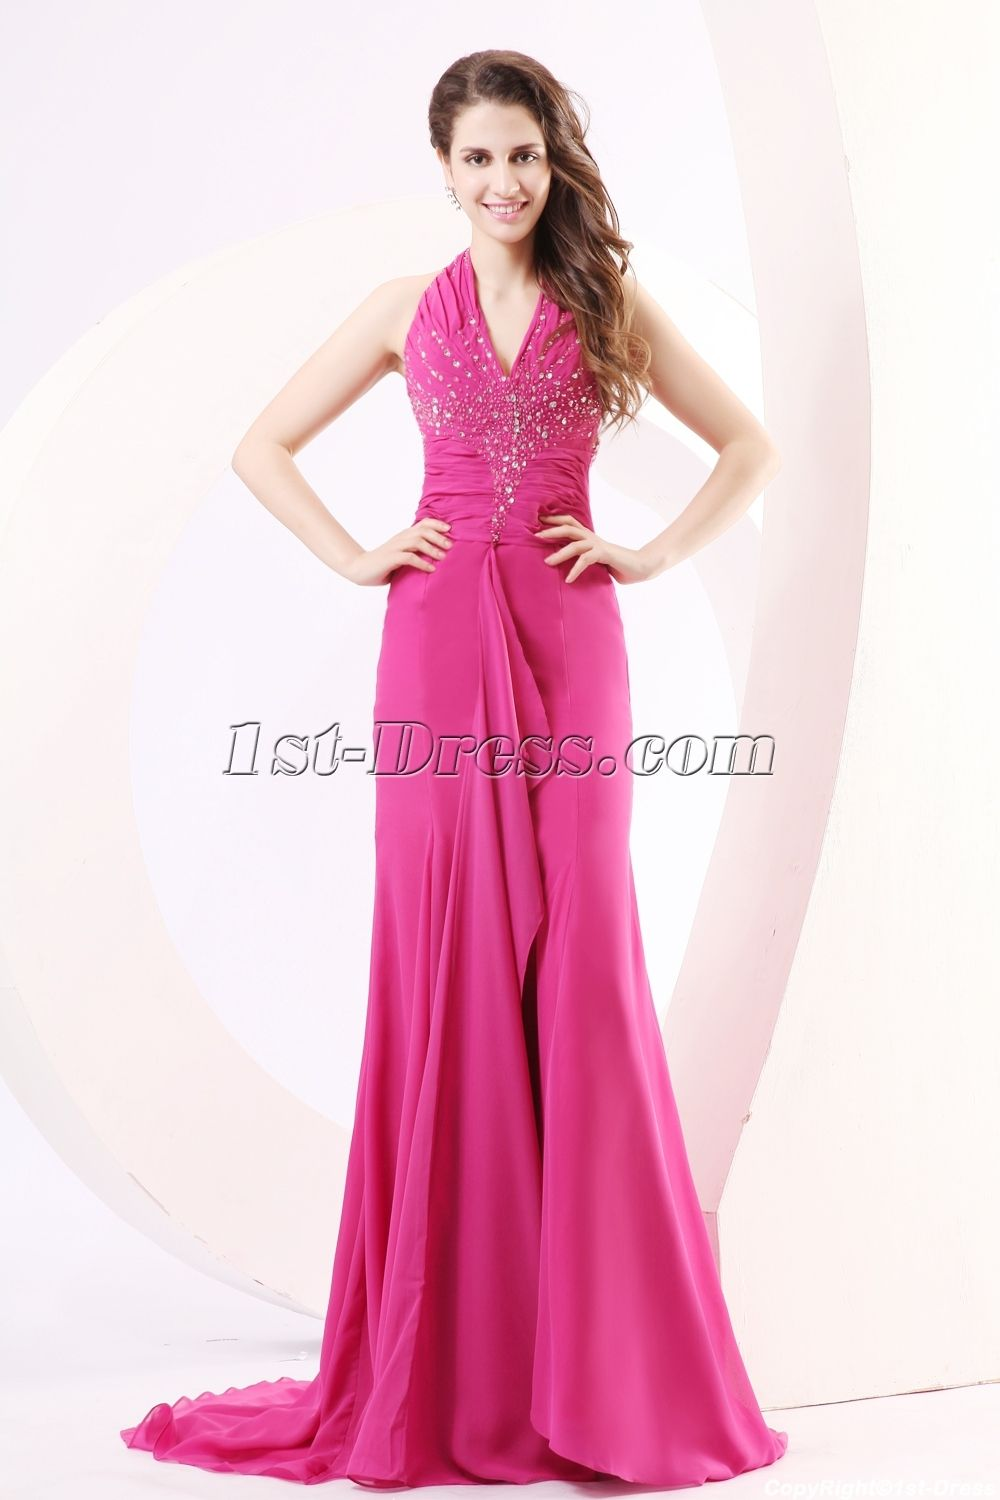 Fuchsia Backless Sexy Prom Dresses with Train:1st-dress.com